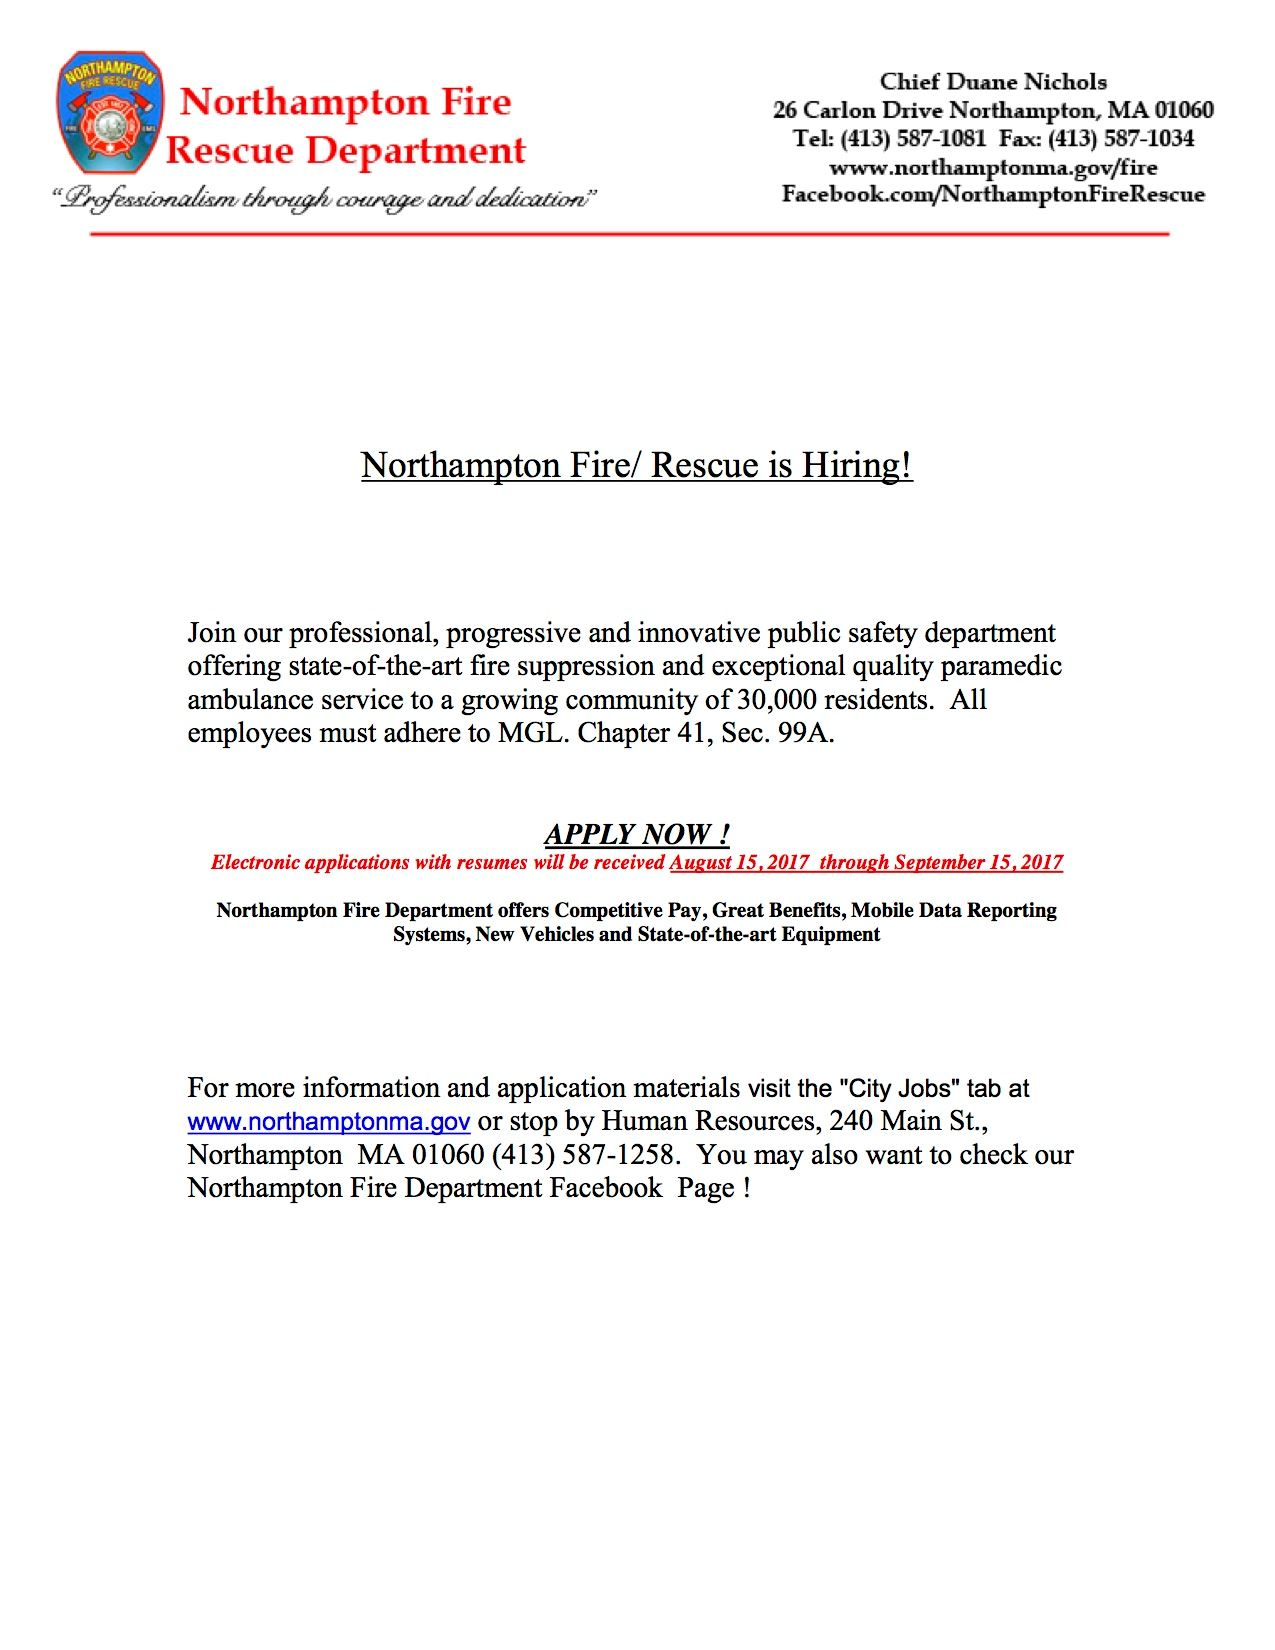 NFR is Hiring 2017